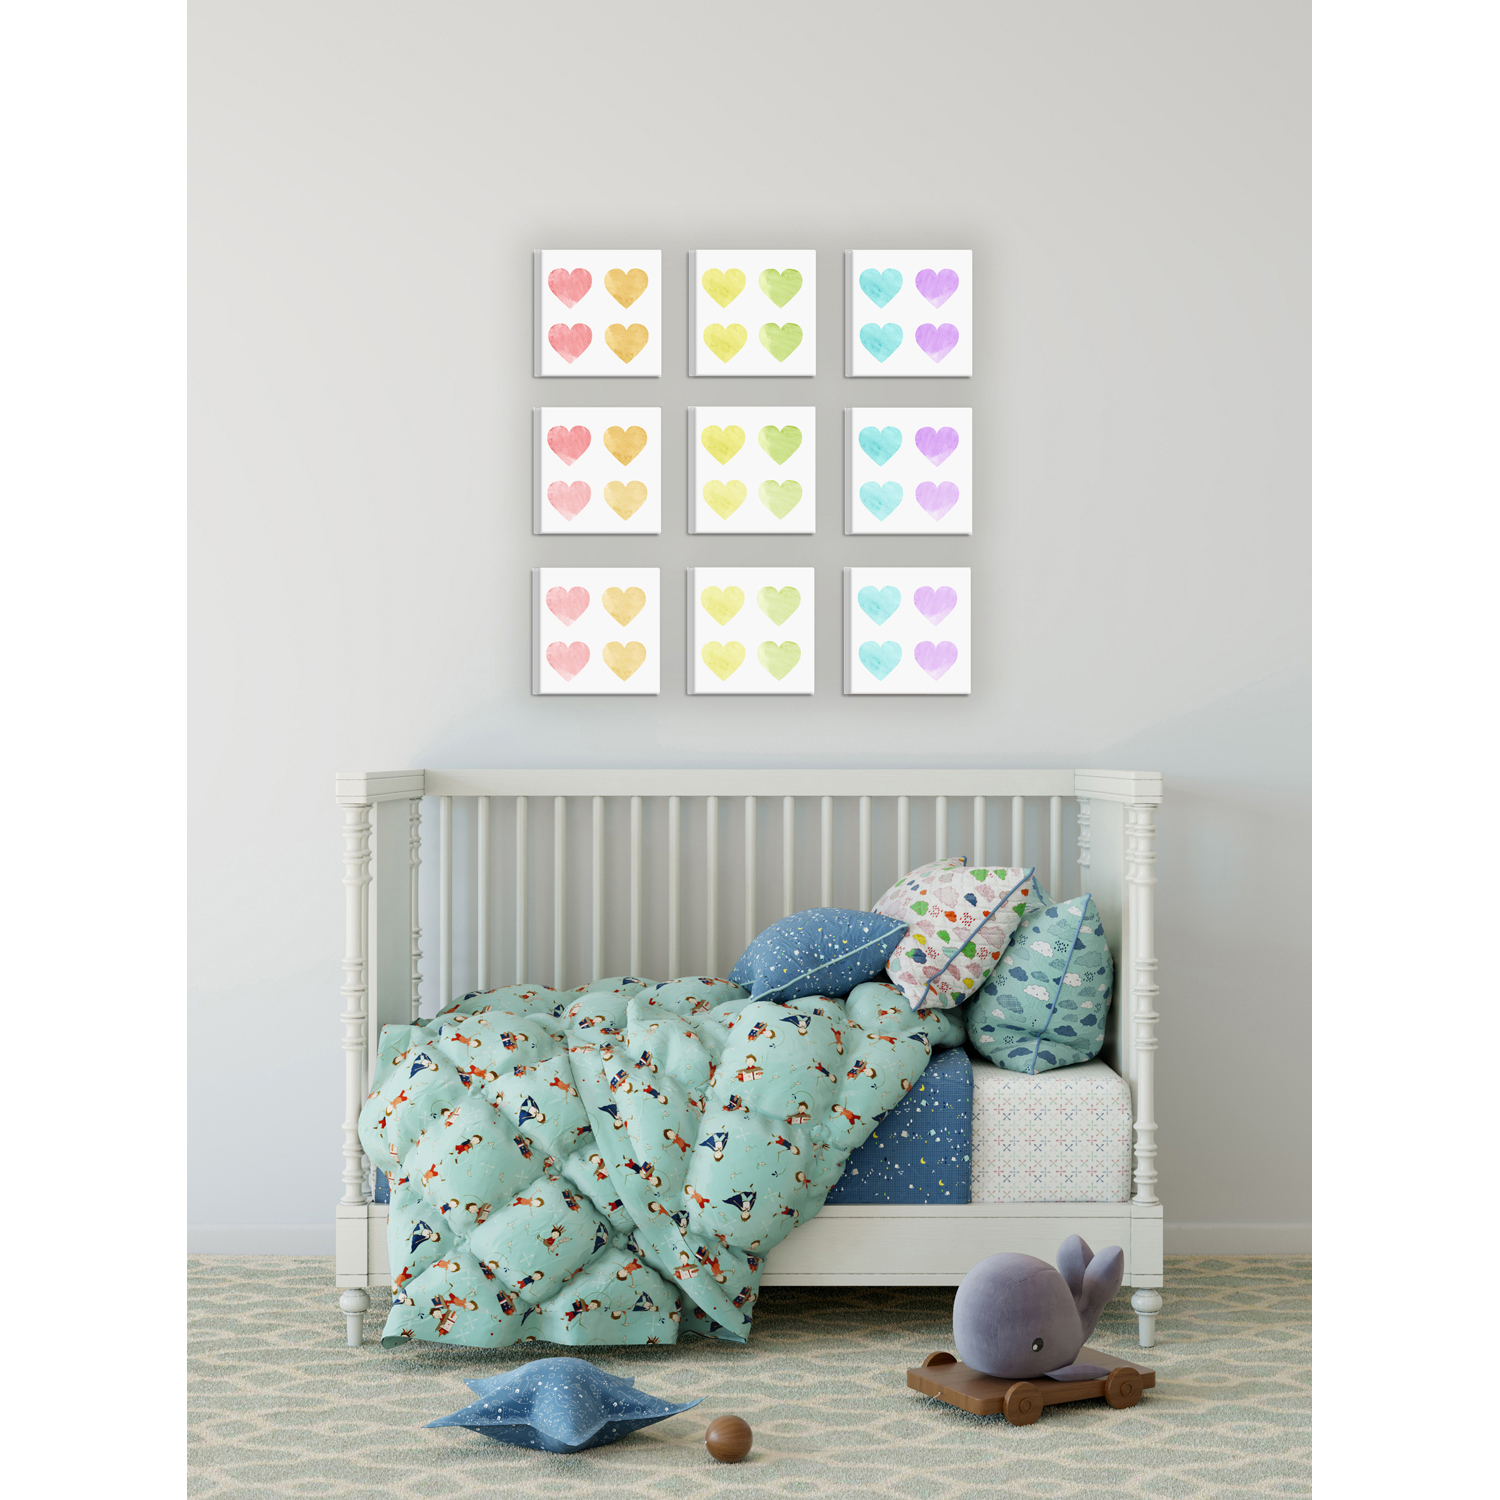 Pastel Hearts 9 Piece Stretched Canvas